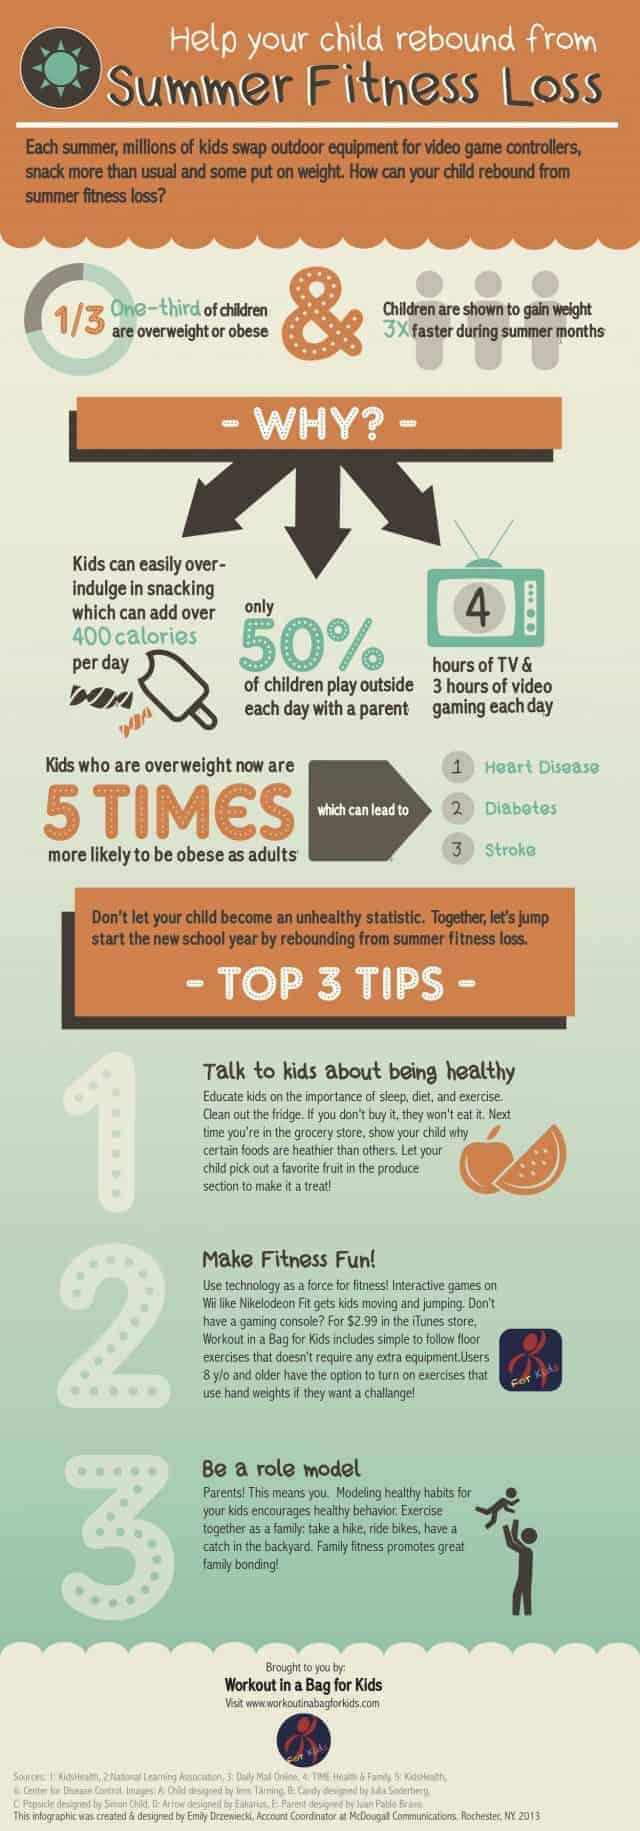 Help Your Kids Rebound from Summer Fitness Loss